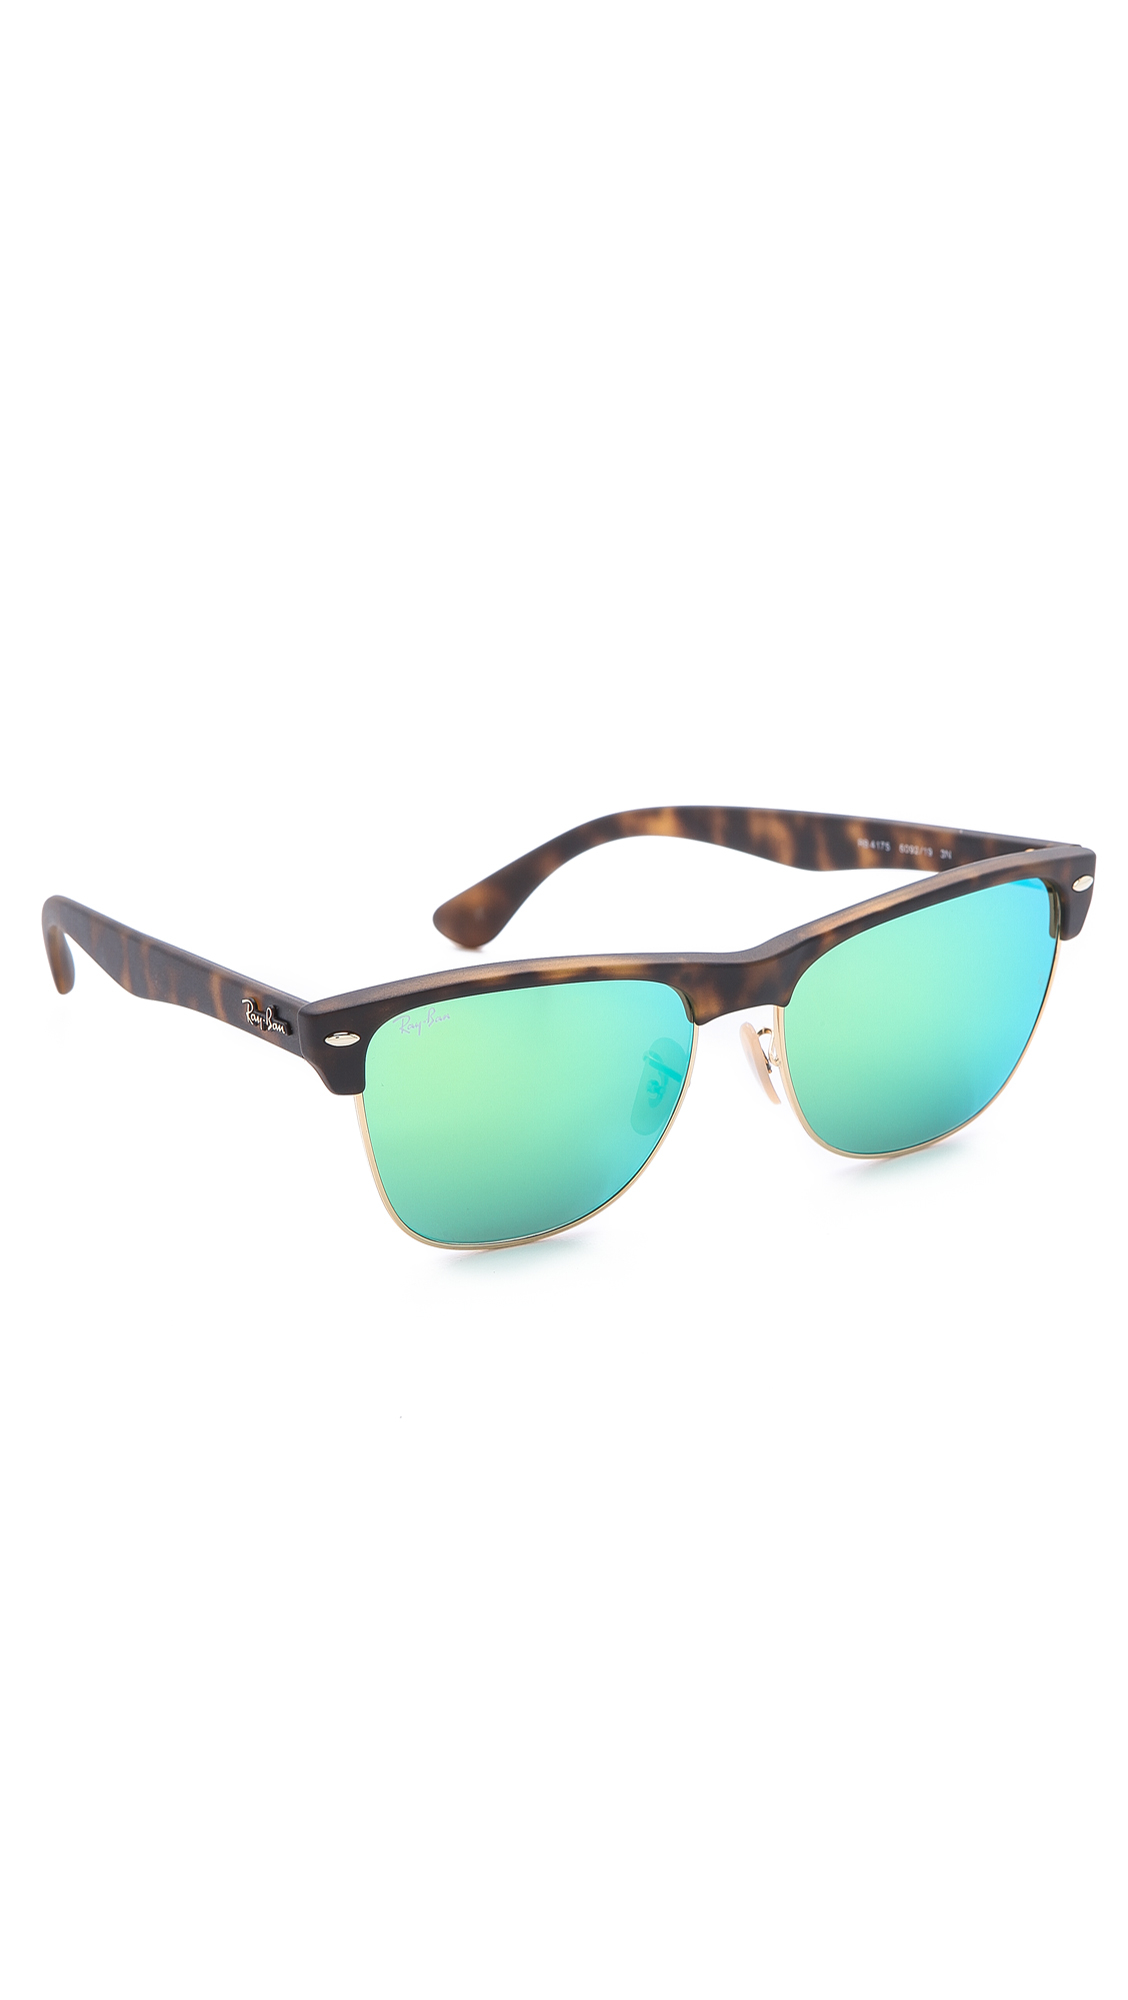 Ray Ban Oversized Clubmaster Sunglasses With Mirrored Lens